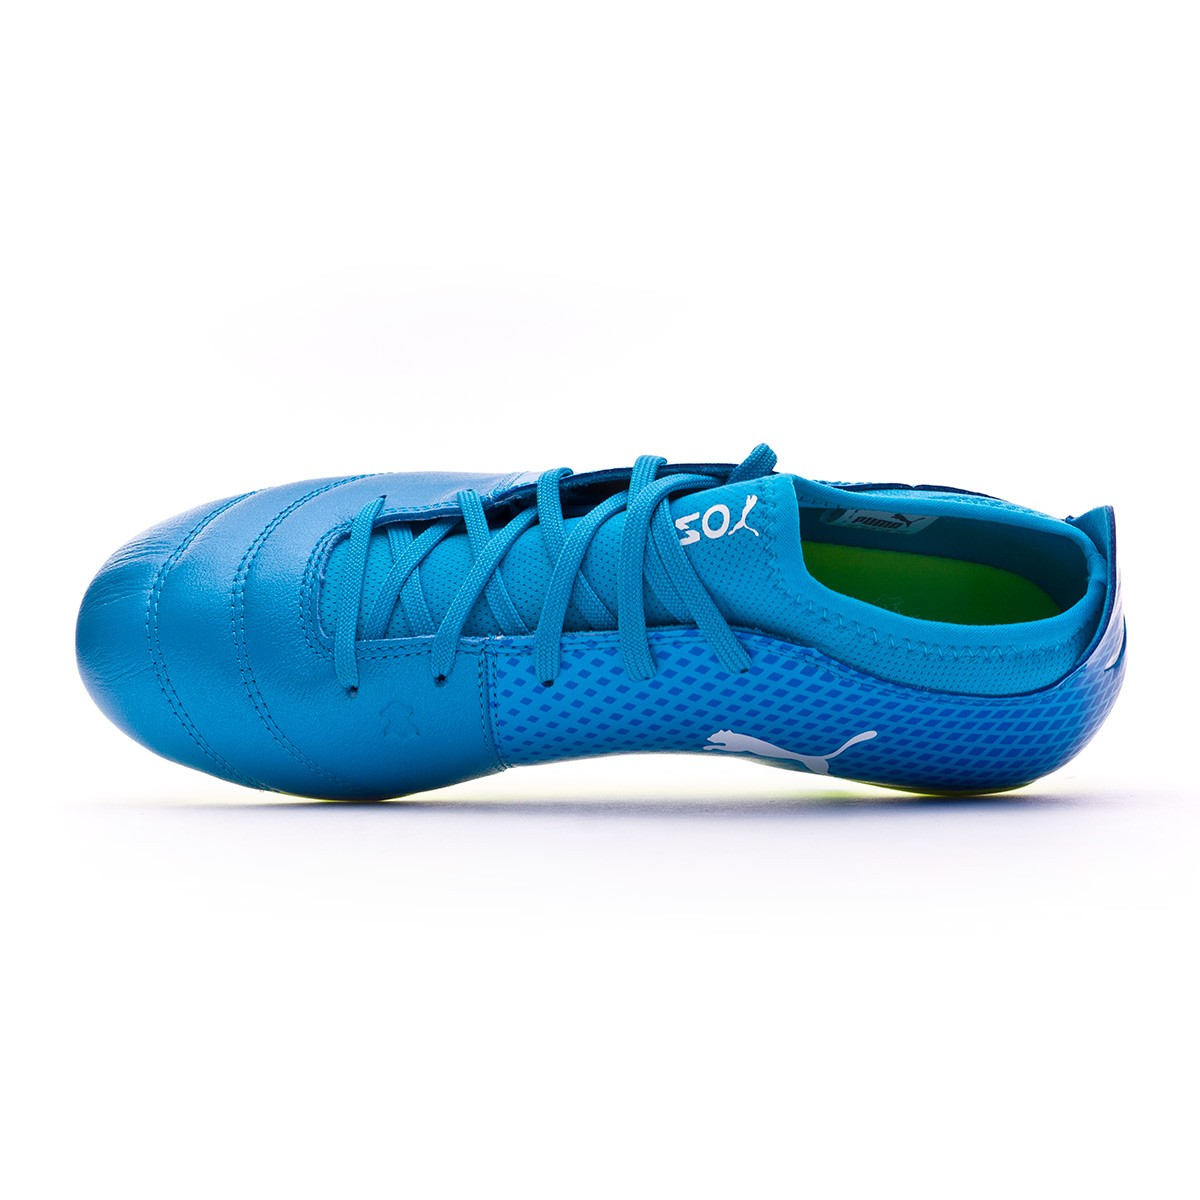 f7752d1cf9d ... Bota One 17.3 AG Niño Atomic blue-Puma white-Safety yellow. CATEGORY.  Football boots